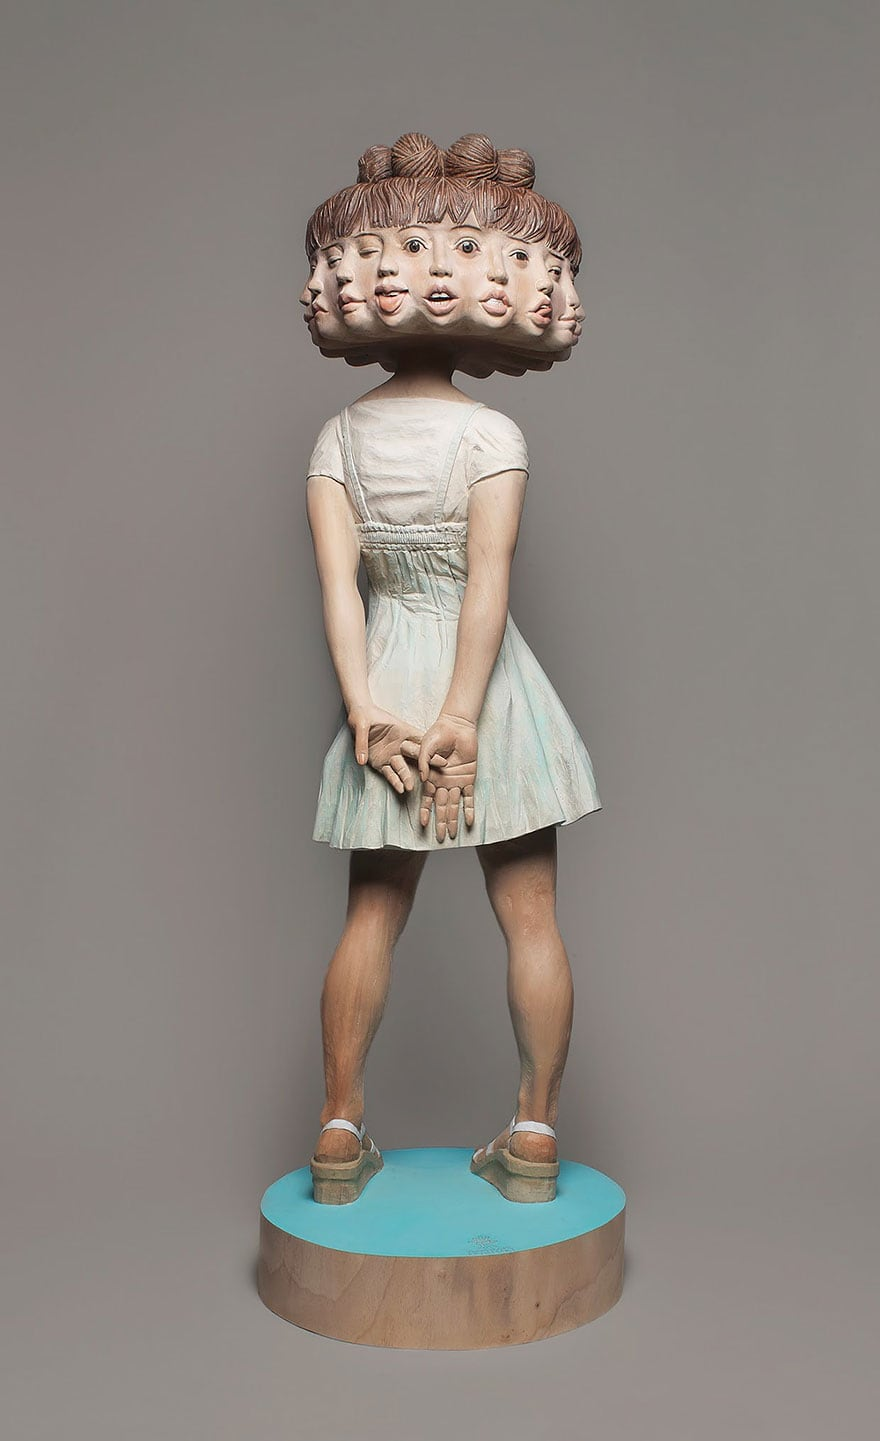 Wood-Sculptures-Of-Bizarrely-Twisted-Characters-By-A-Surreal-Japanese-Artist-10